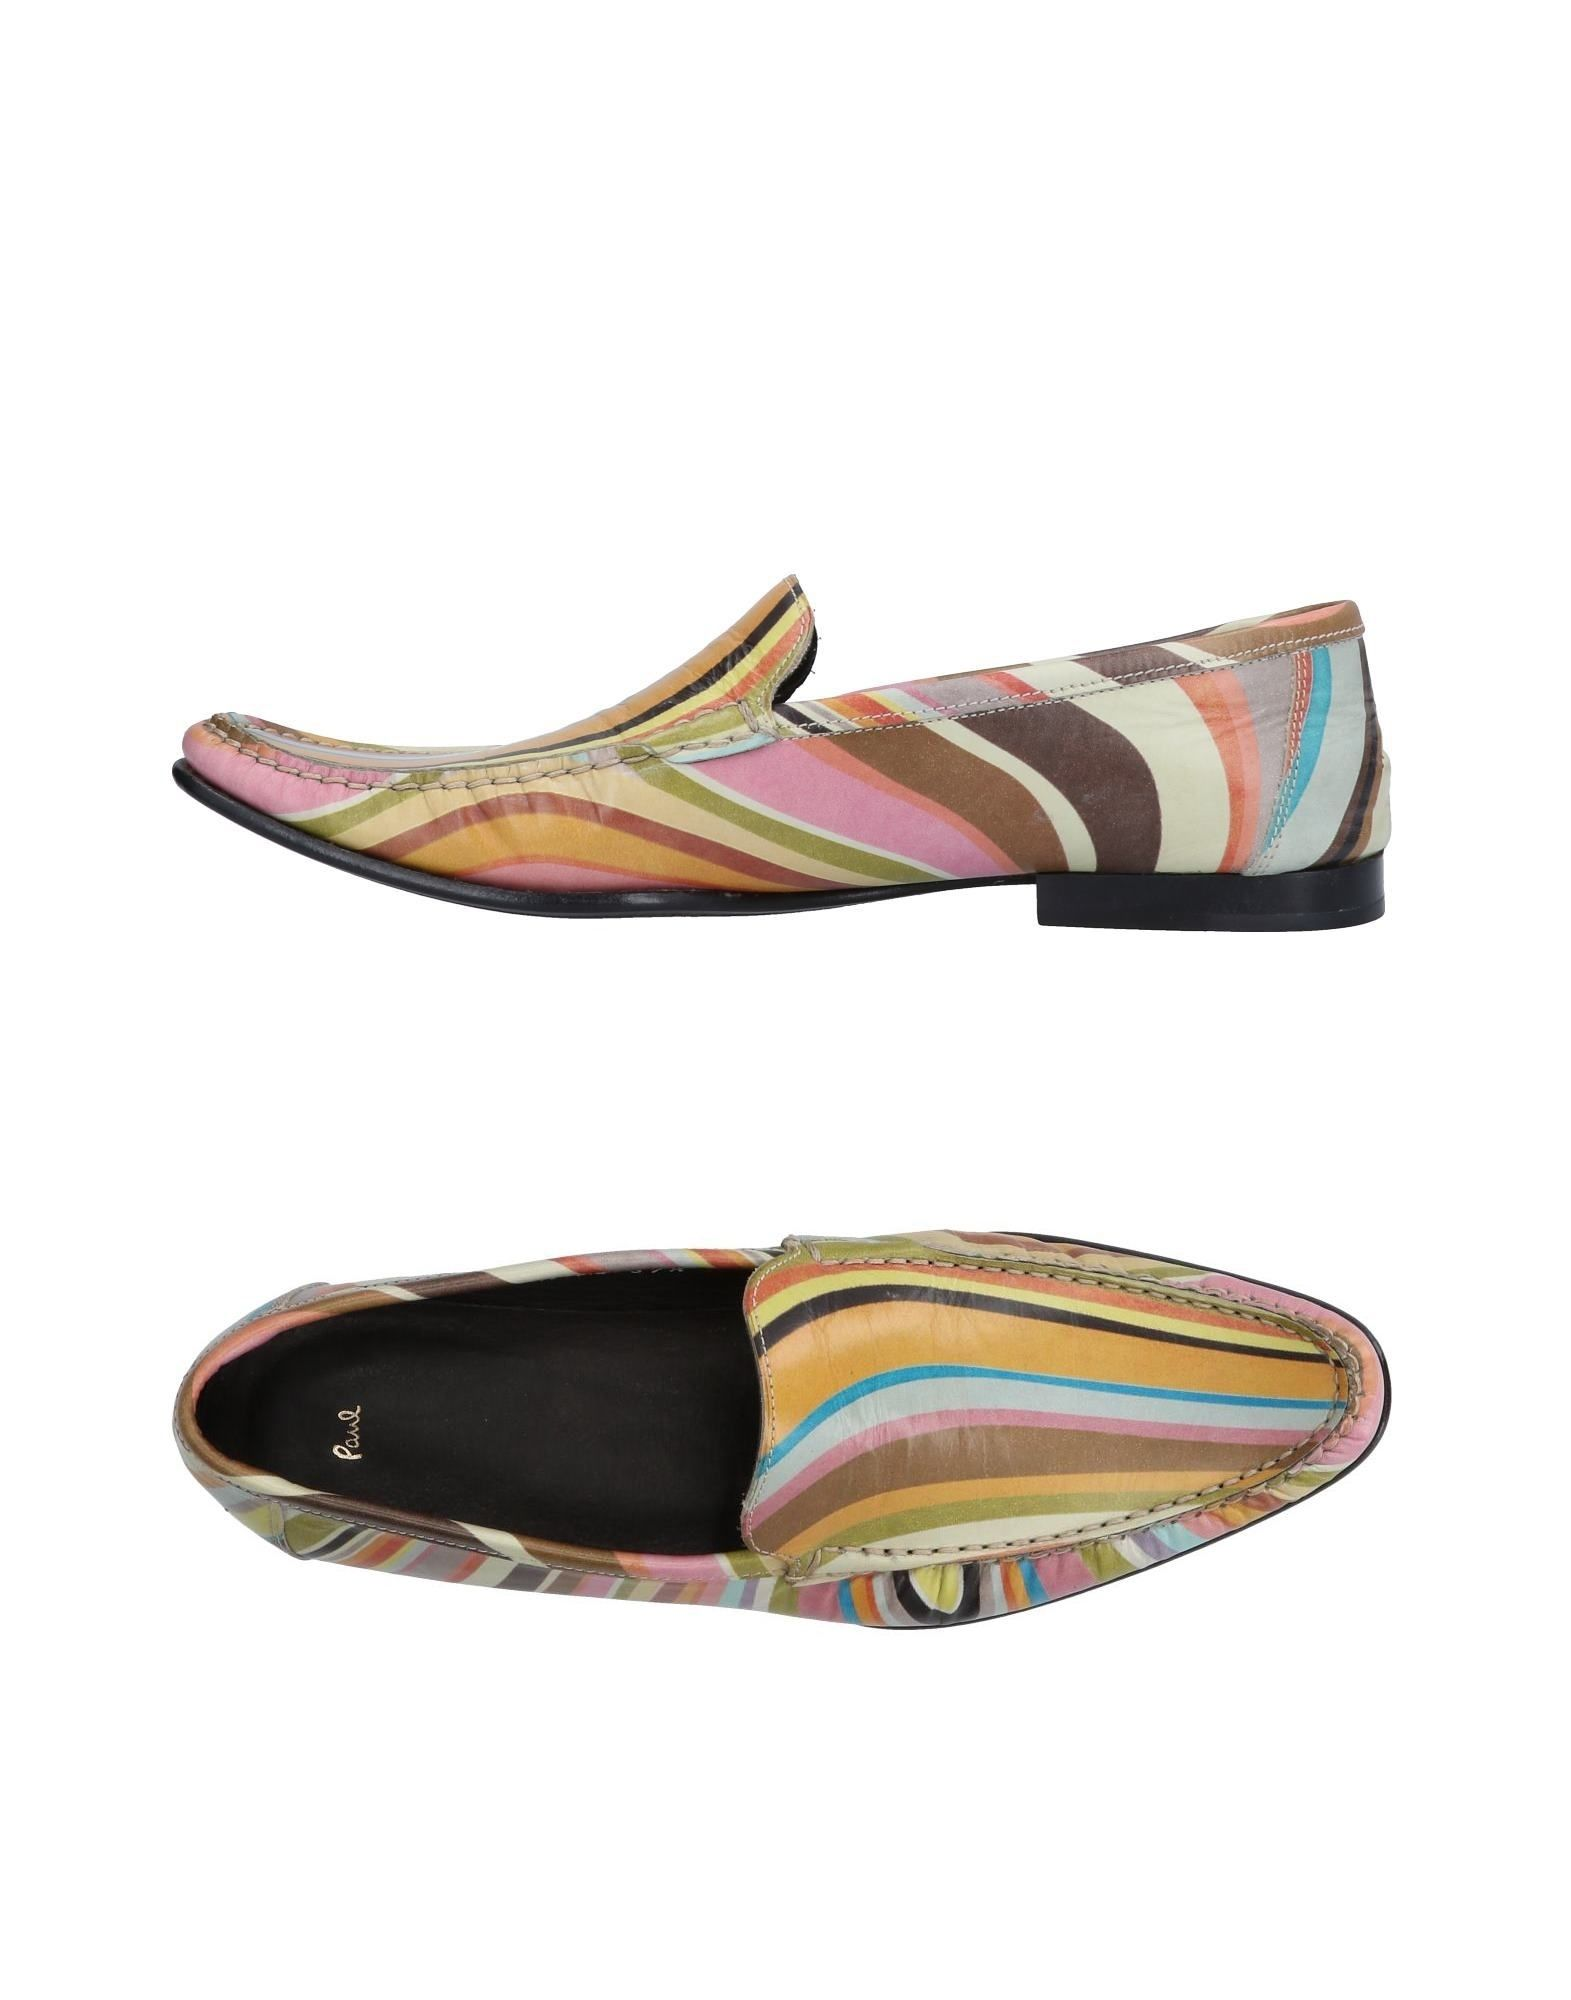 Rabatt Schuhe Paul Smith Mokassins Damen  11499312KL